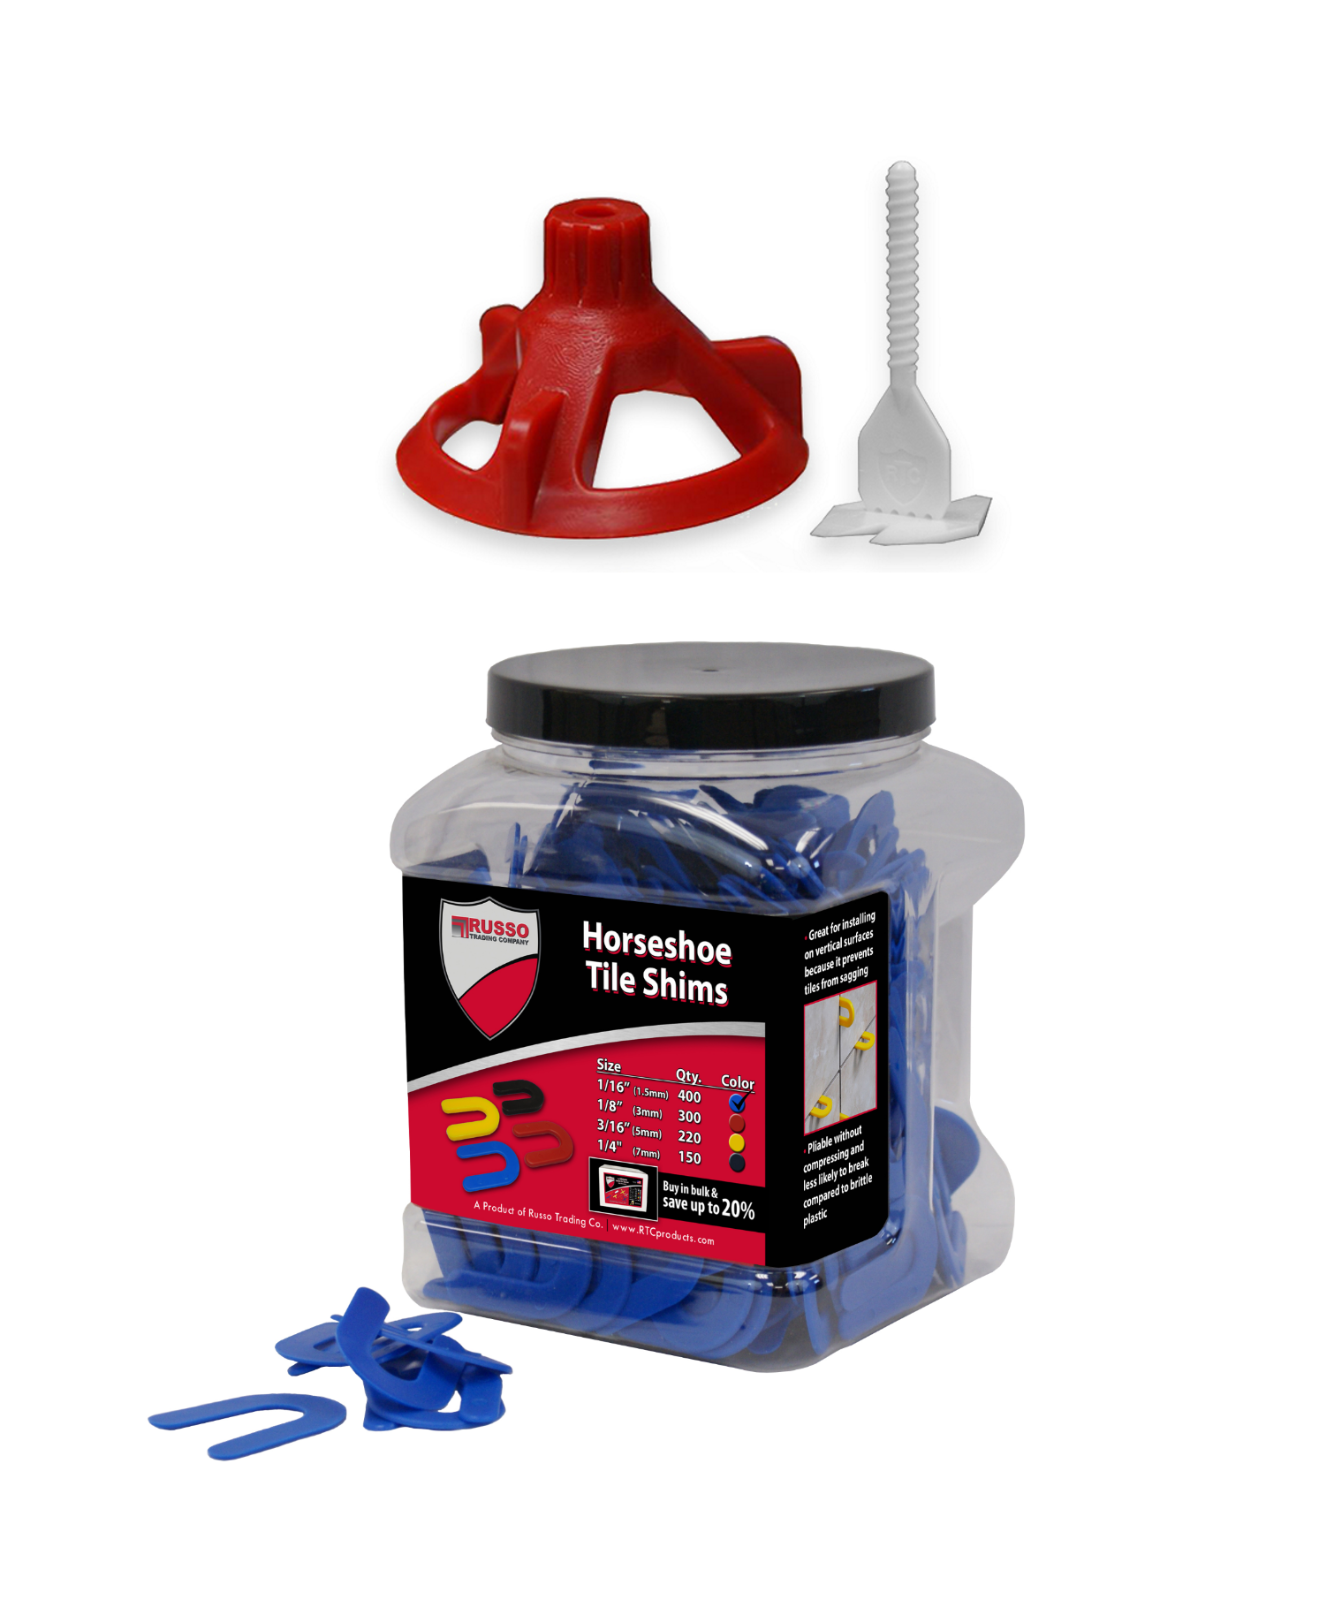 Spin Doctor Tile Leveling System with Horseshoe Tile Spacers 1/16 Inch Set